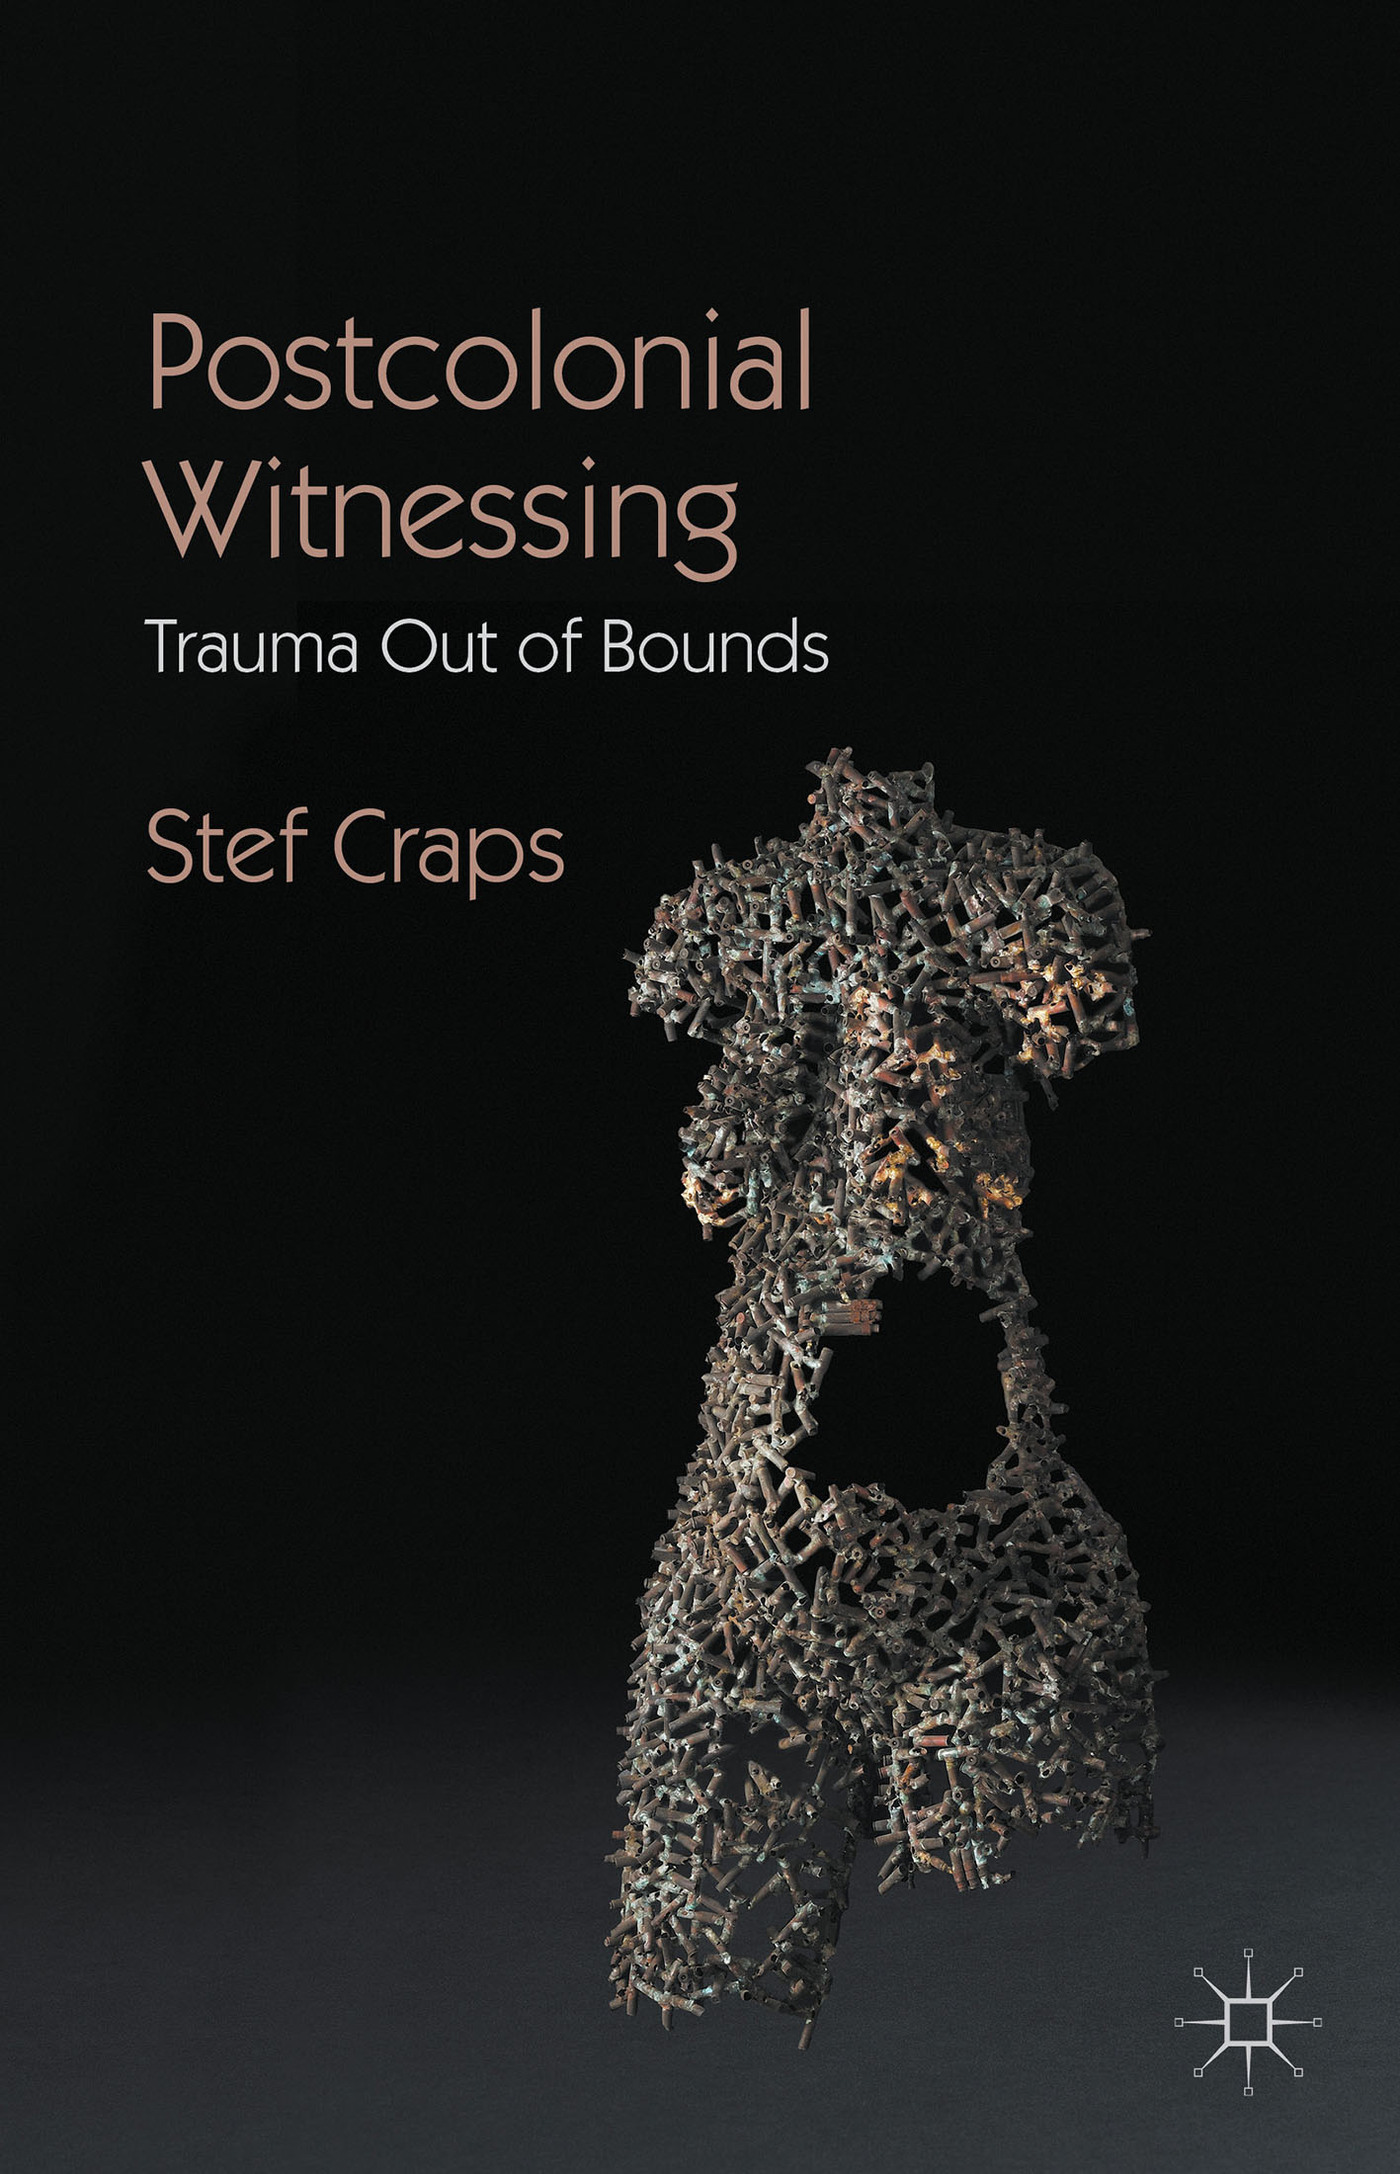 Postcolonial Witnessing: Trauma Out of Bounds